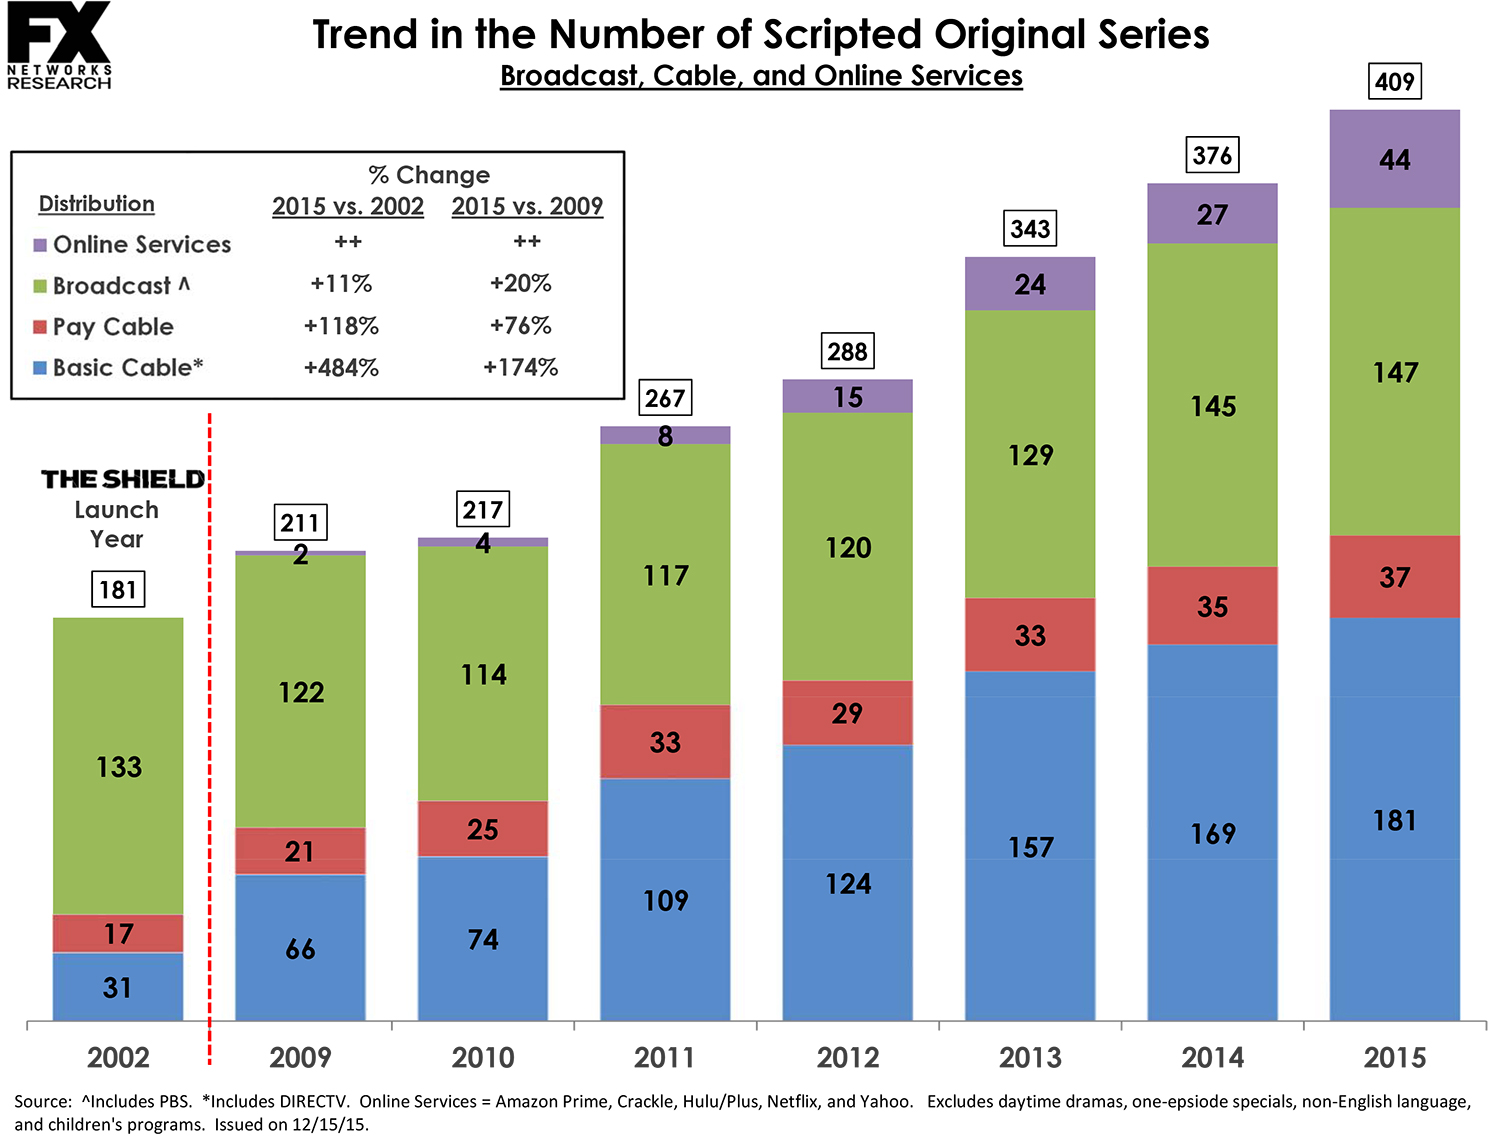 Fuente: FX Networks Research